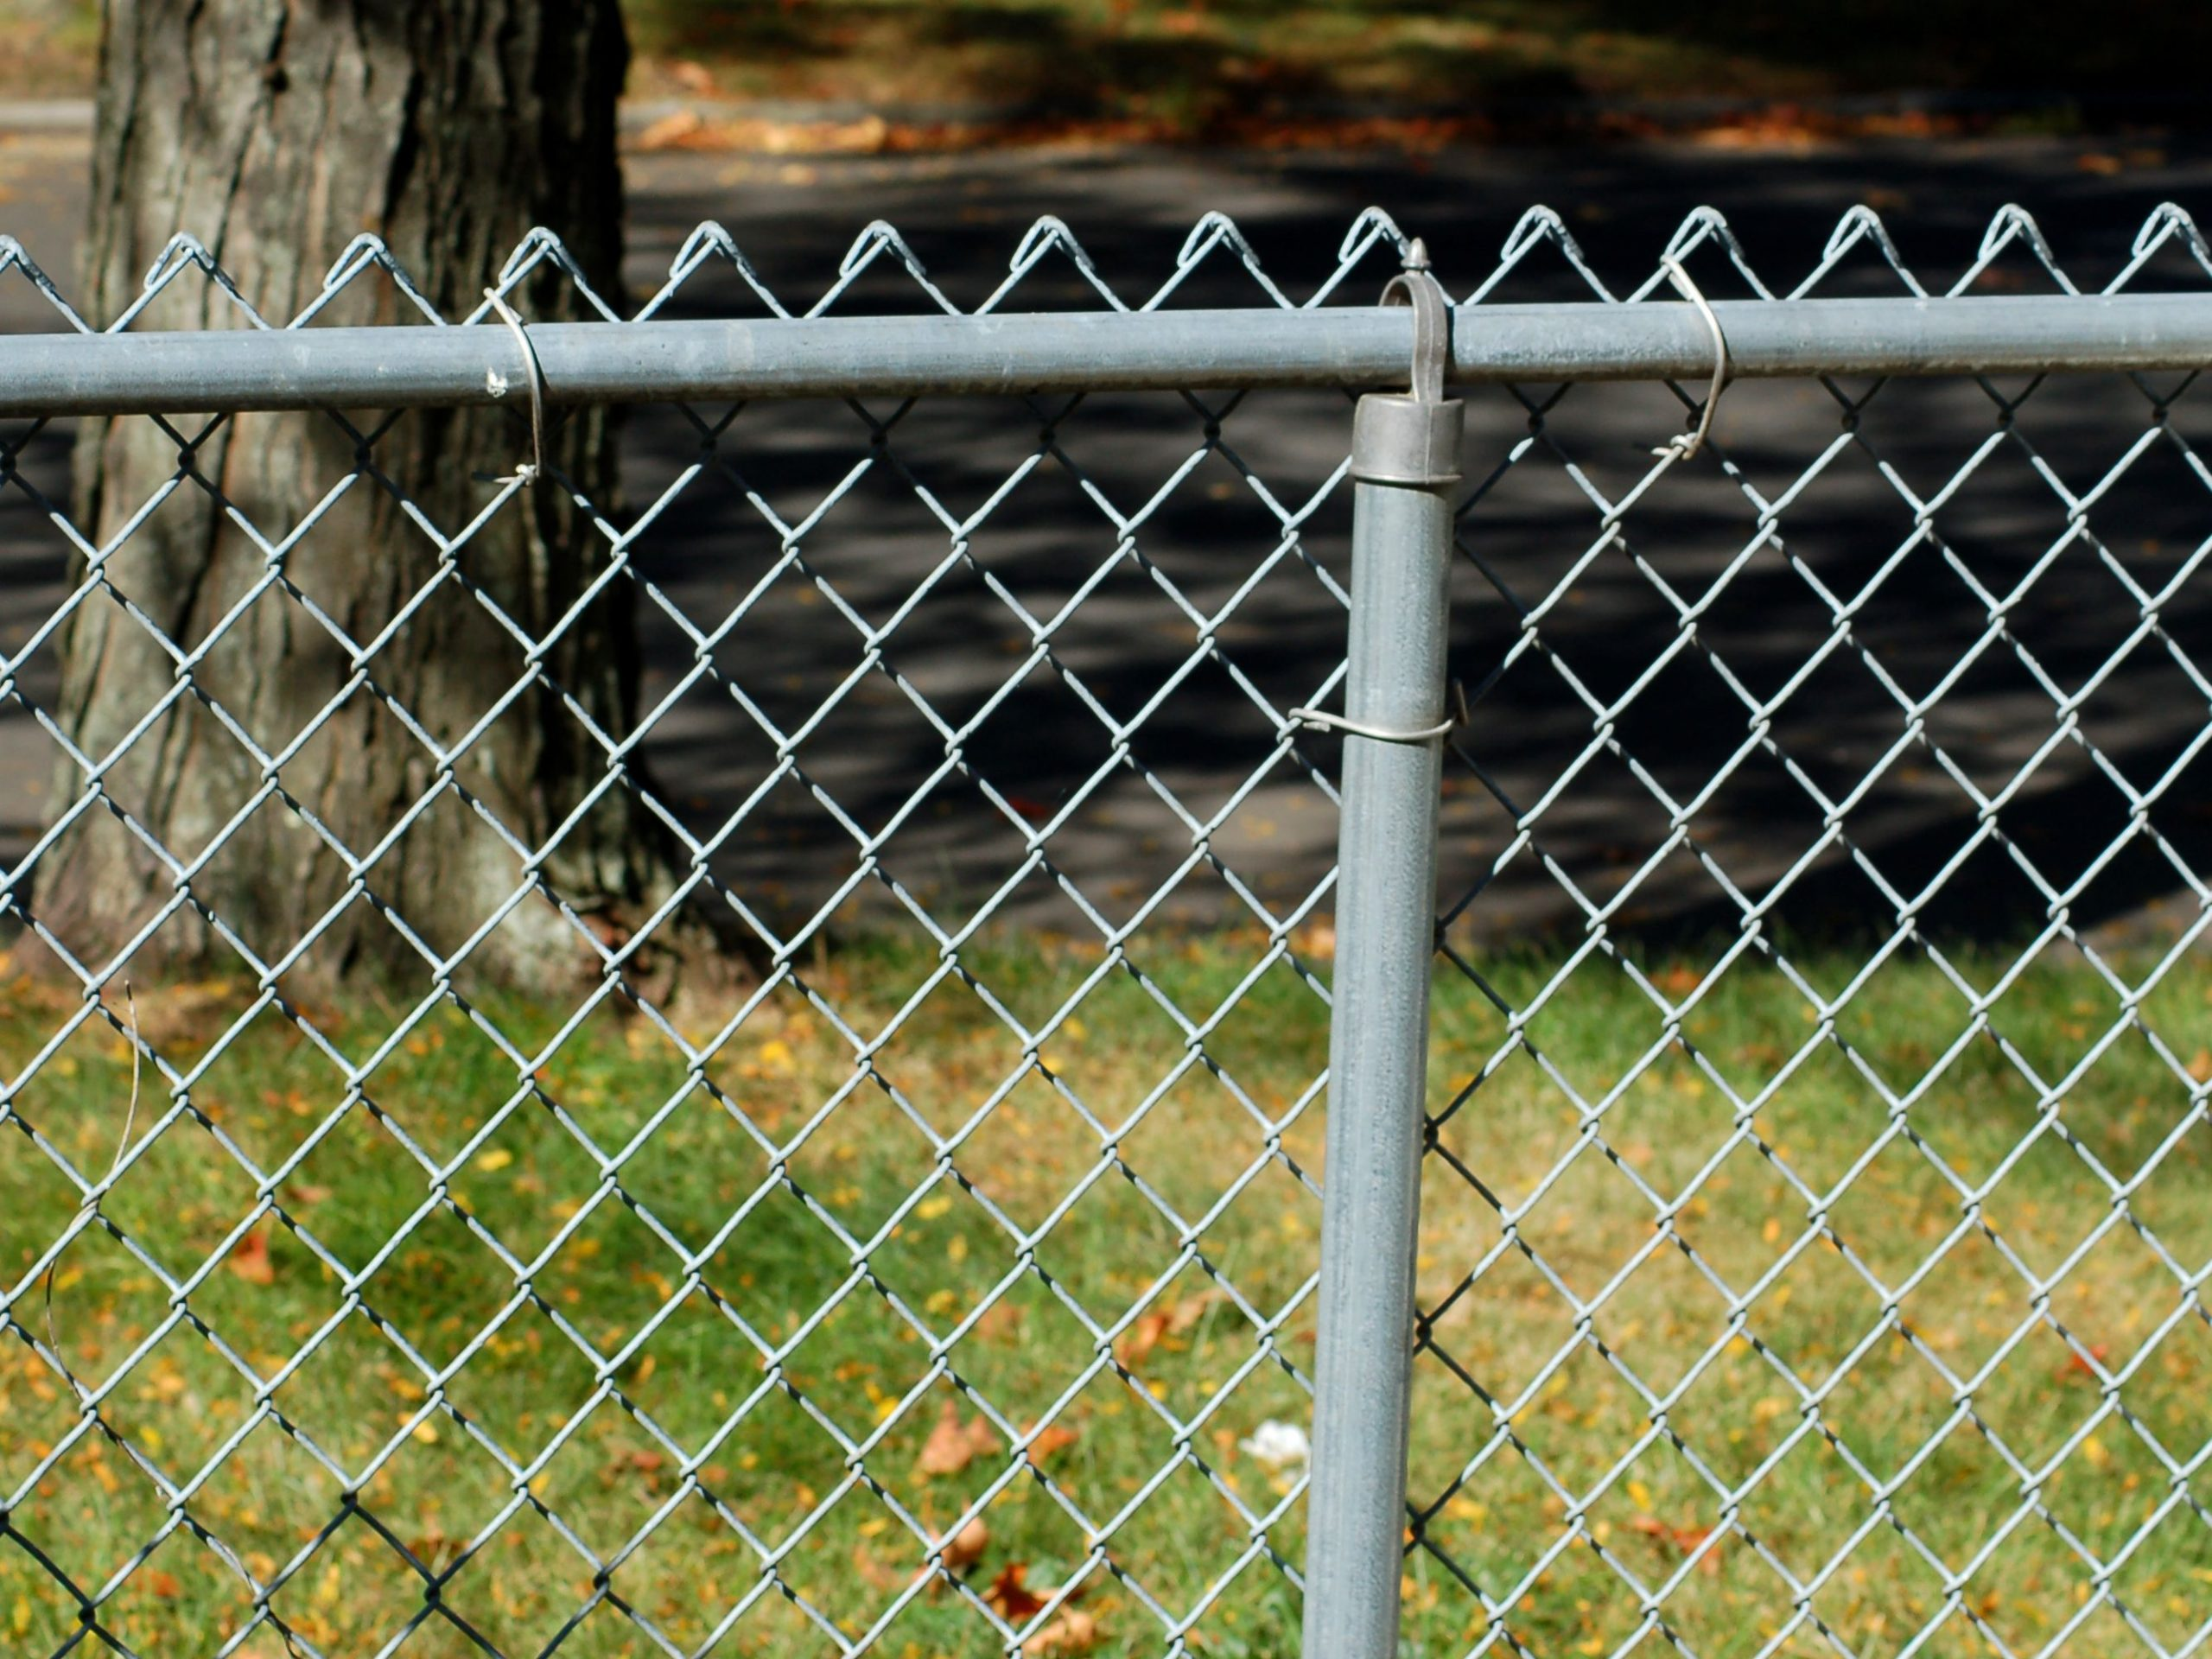 Specialist FENCE COMPANY Abbotsford BC, Chain Link